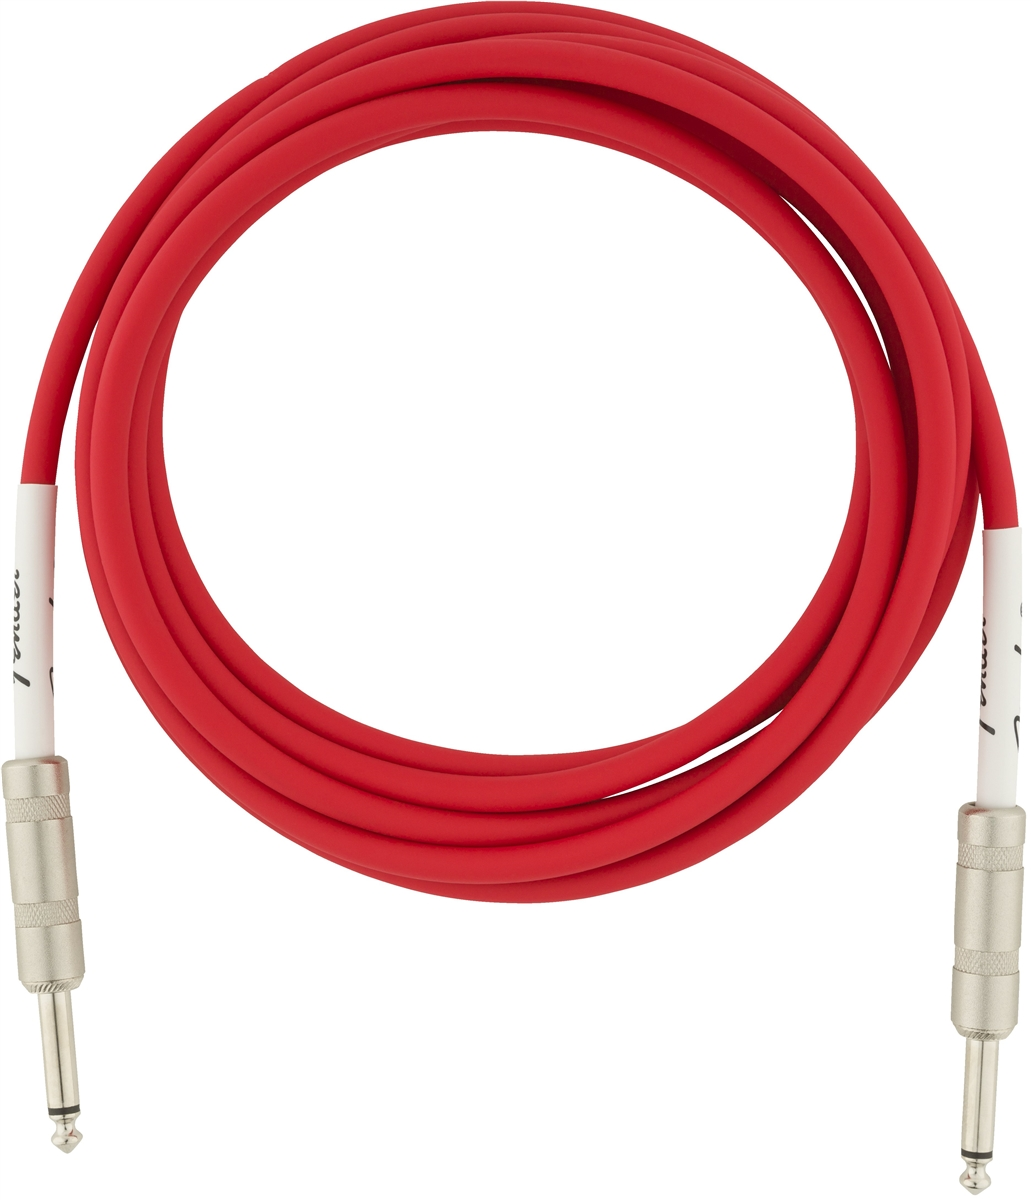 Original Cable 10FT Fiesta Red追加画像